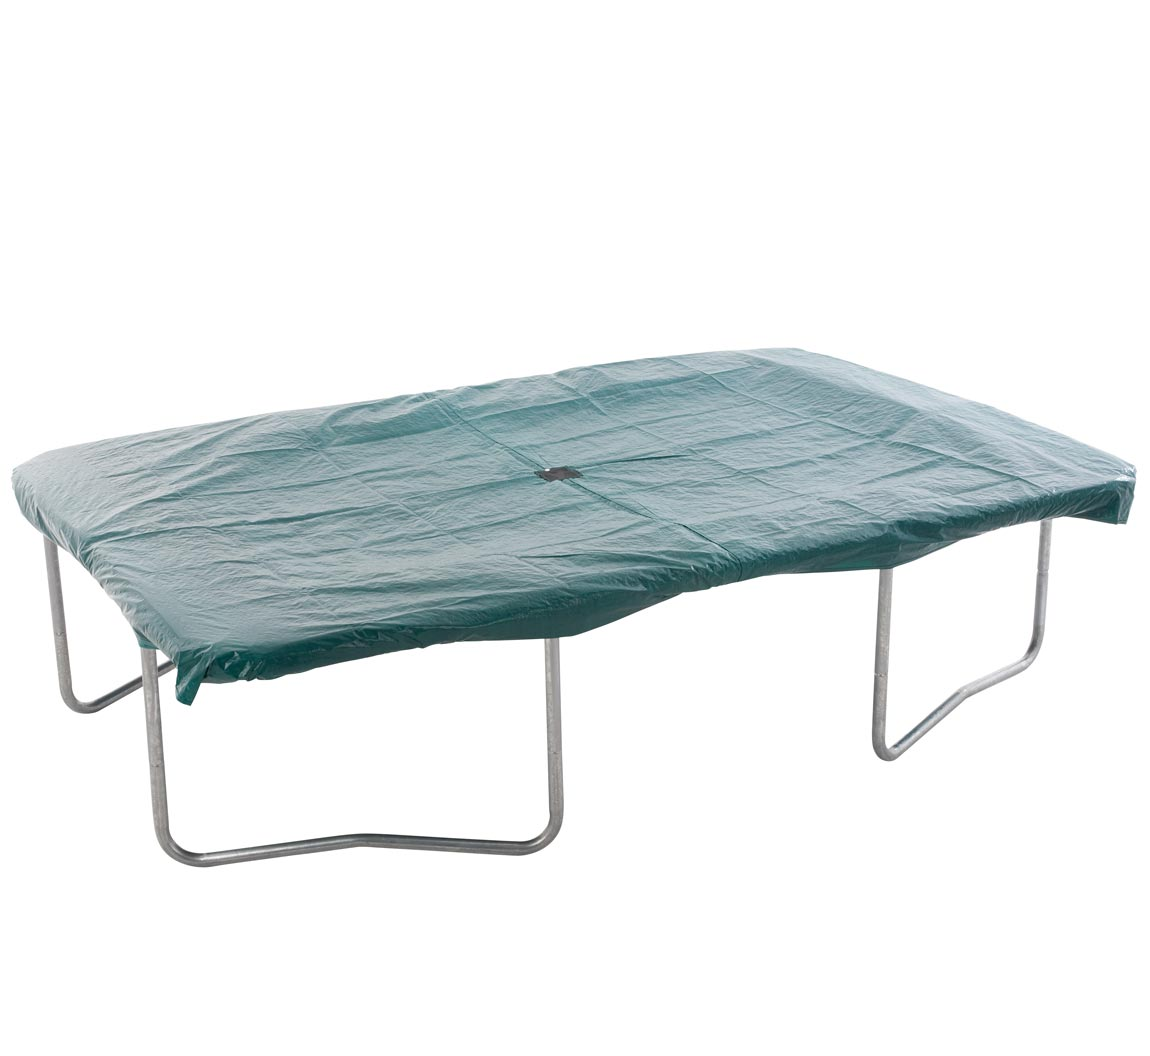 7ft X 10ft Skyhigh Rectangular Trampoline Cover